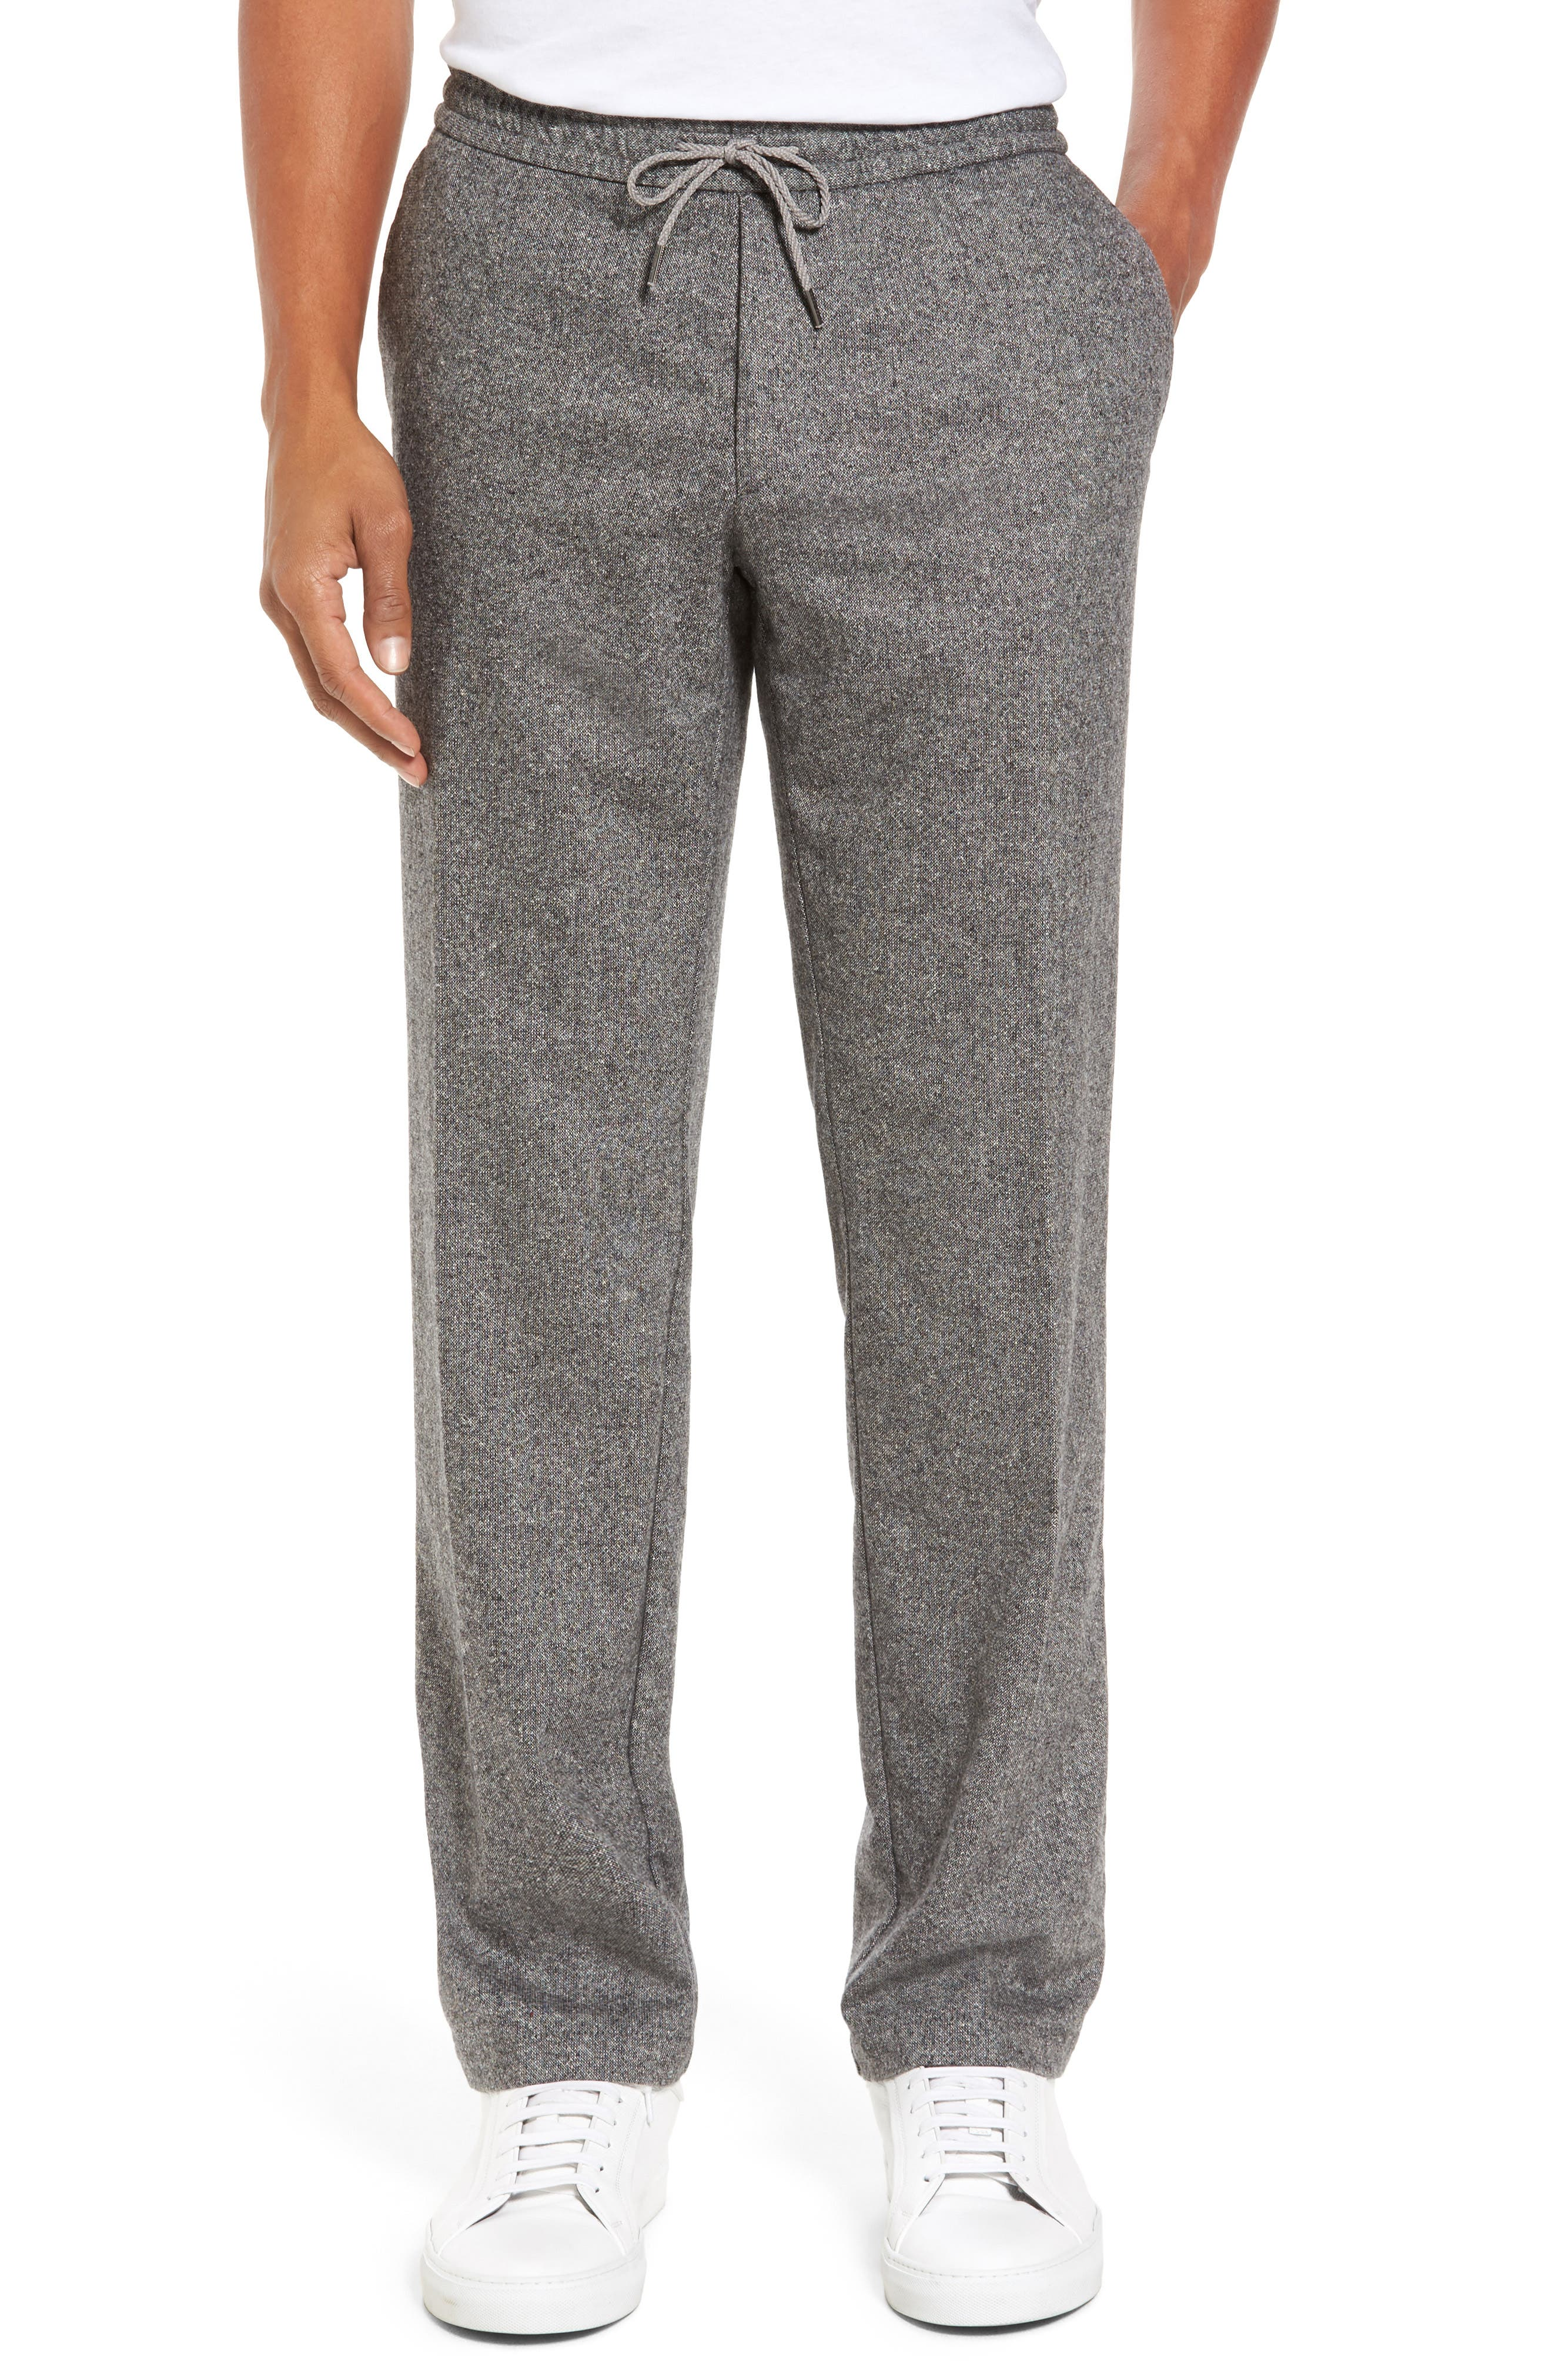 Barne Drawstring Waist Trousers,                         Main,                         color, Grey